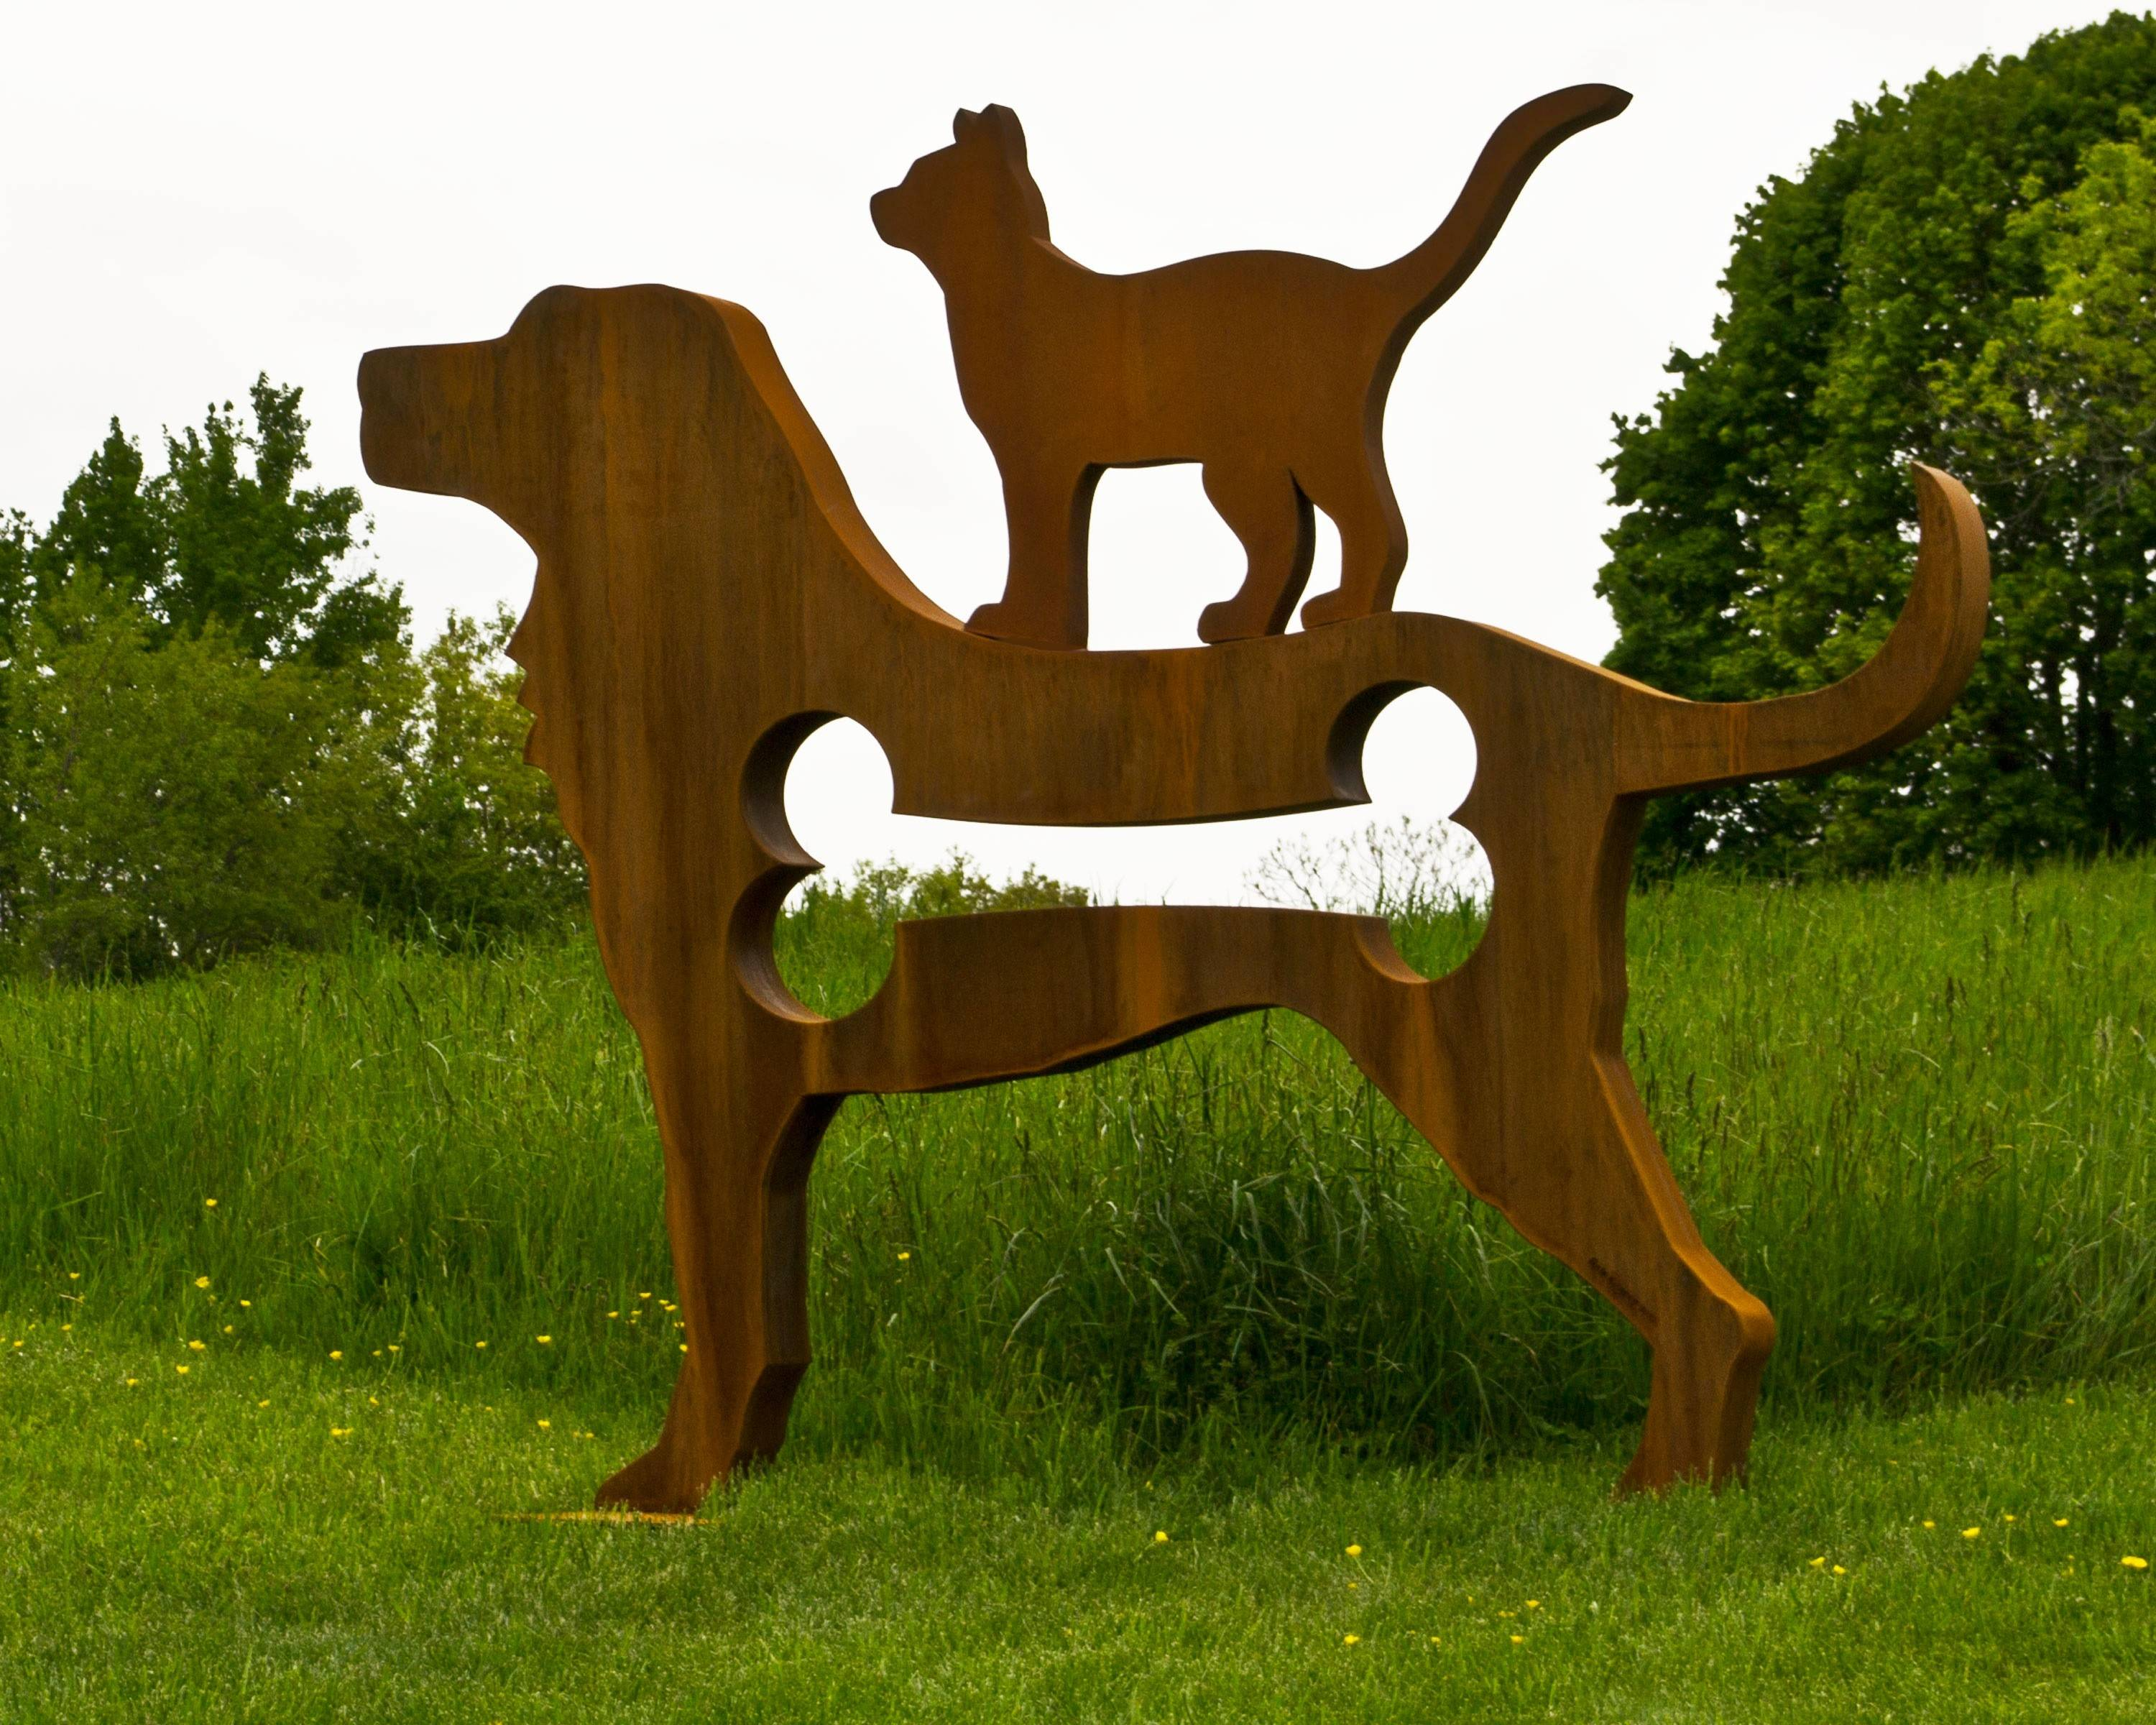 Landscapers to dress up Naperville humane society sculpture